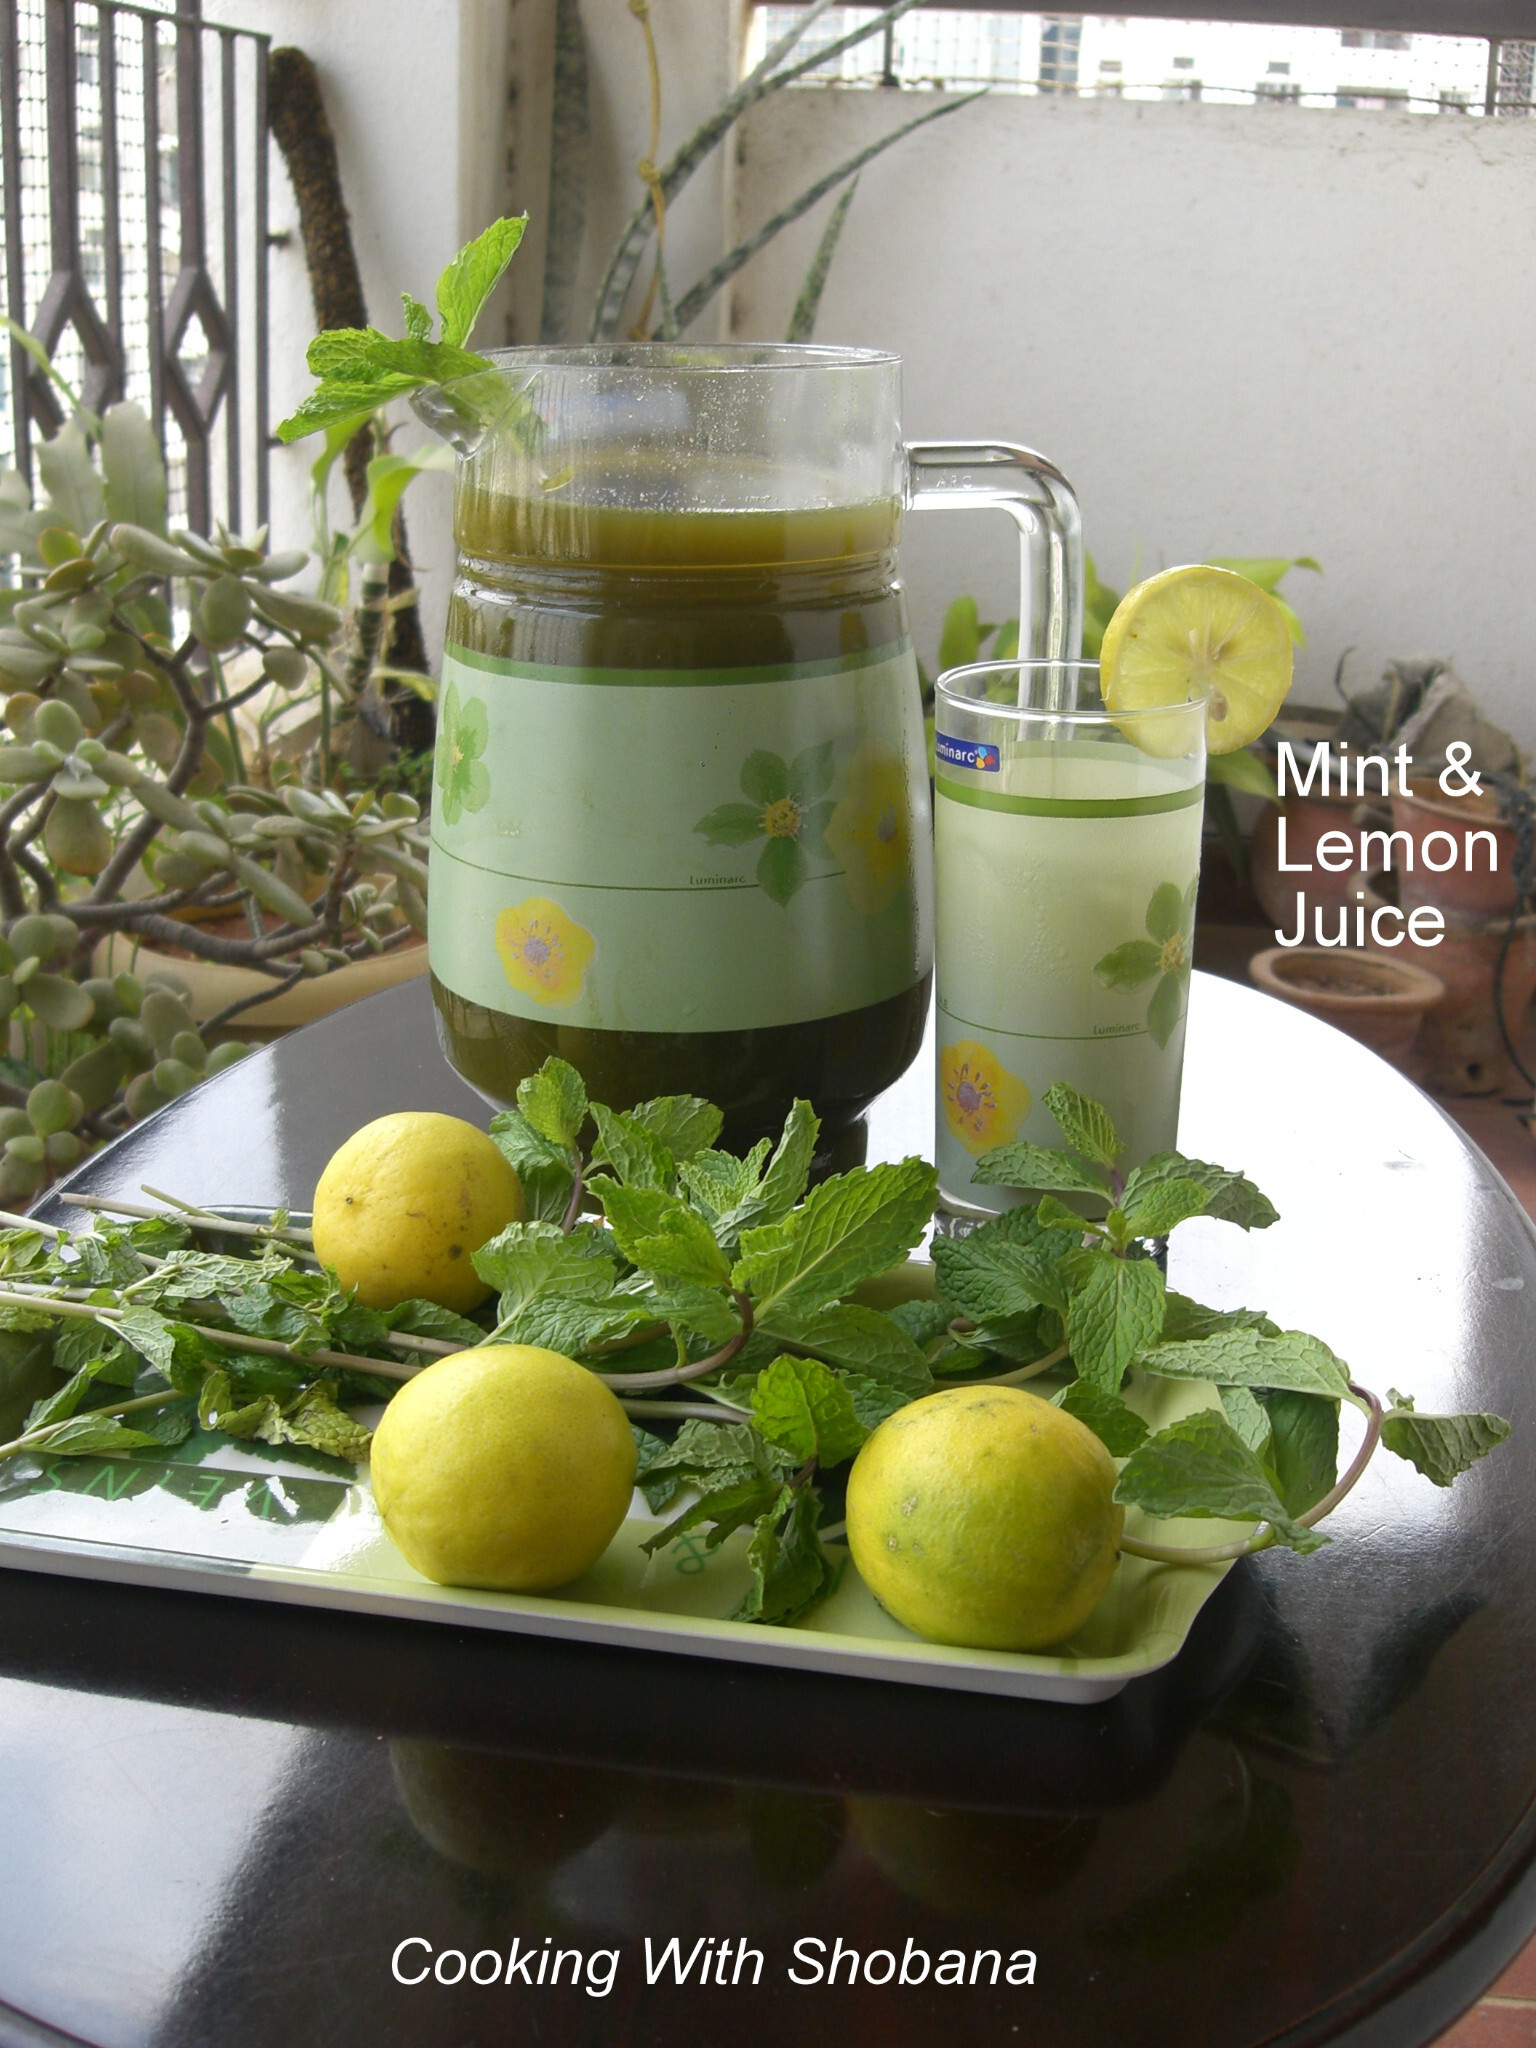 MINT & LEMON JUICE